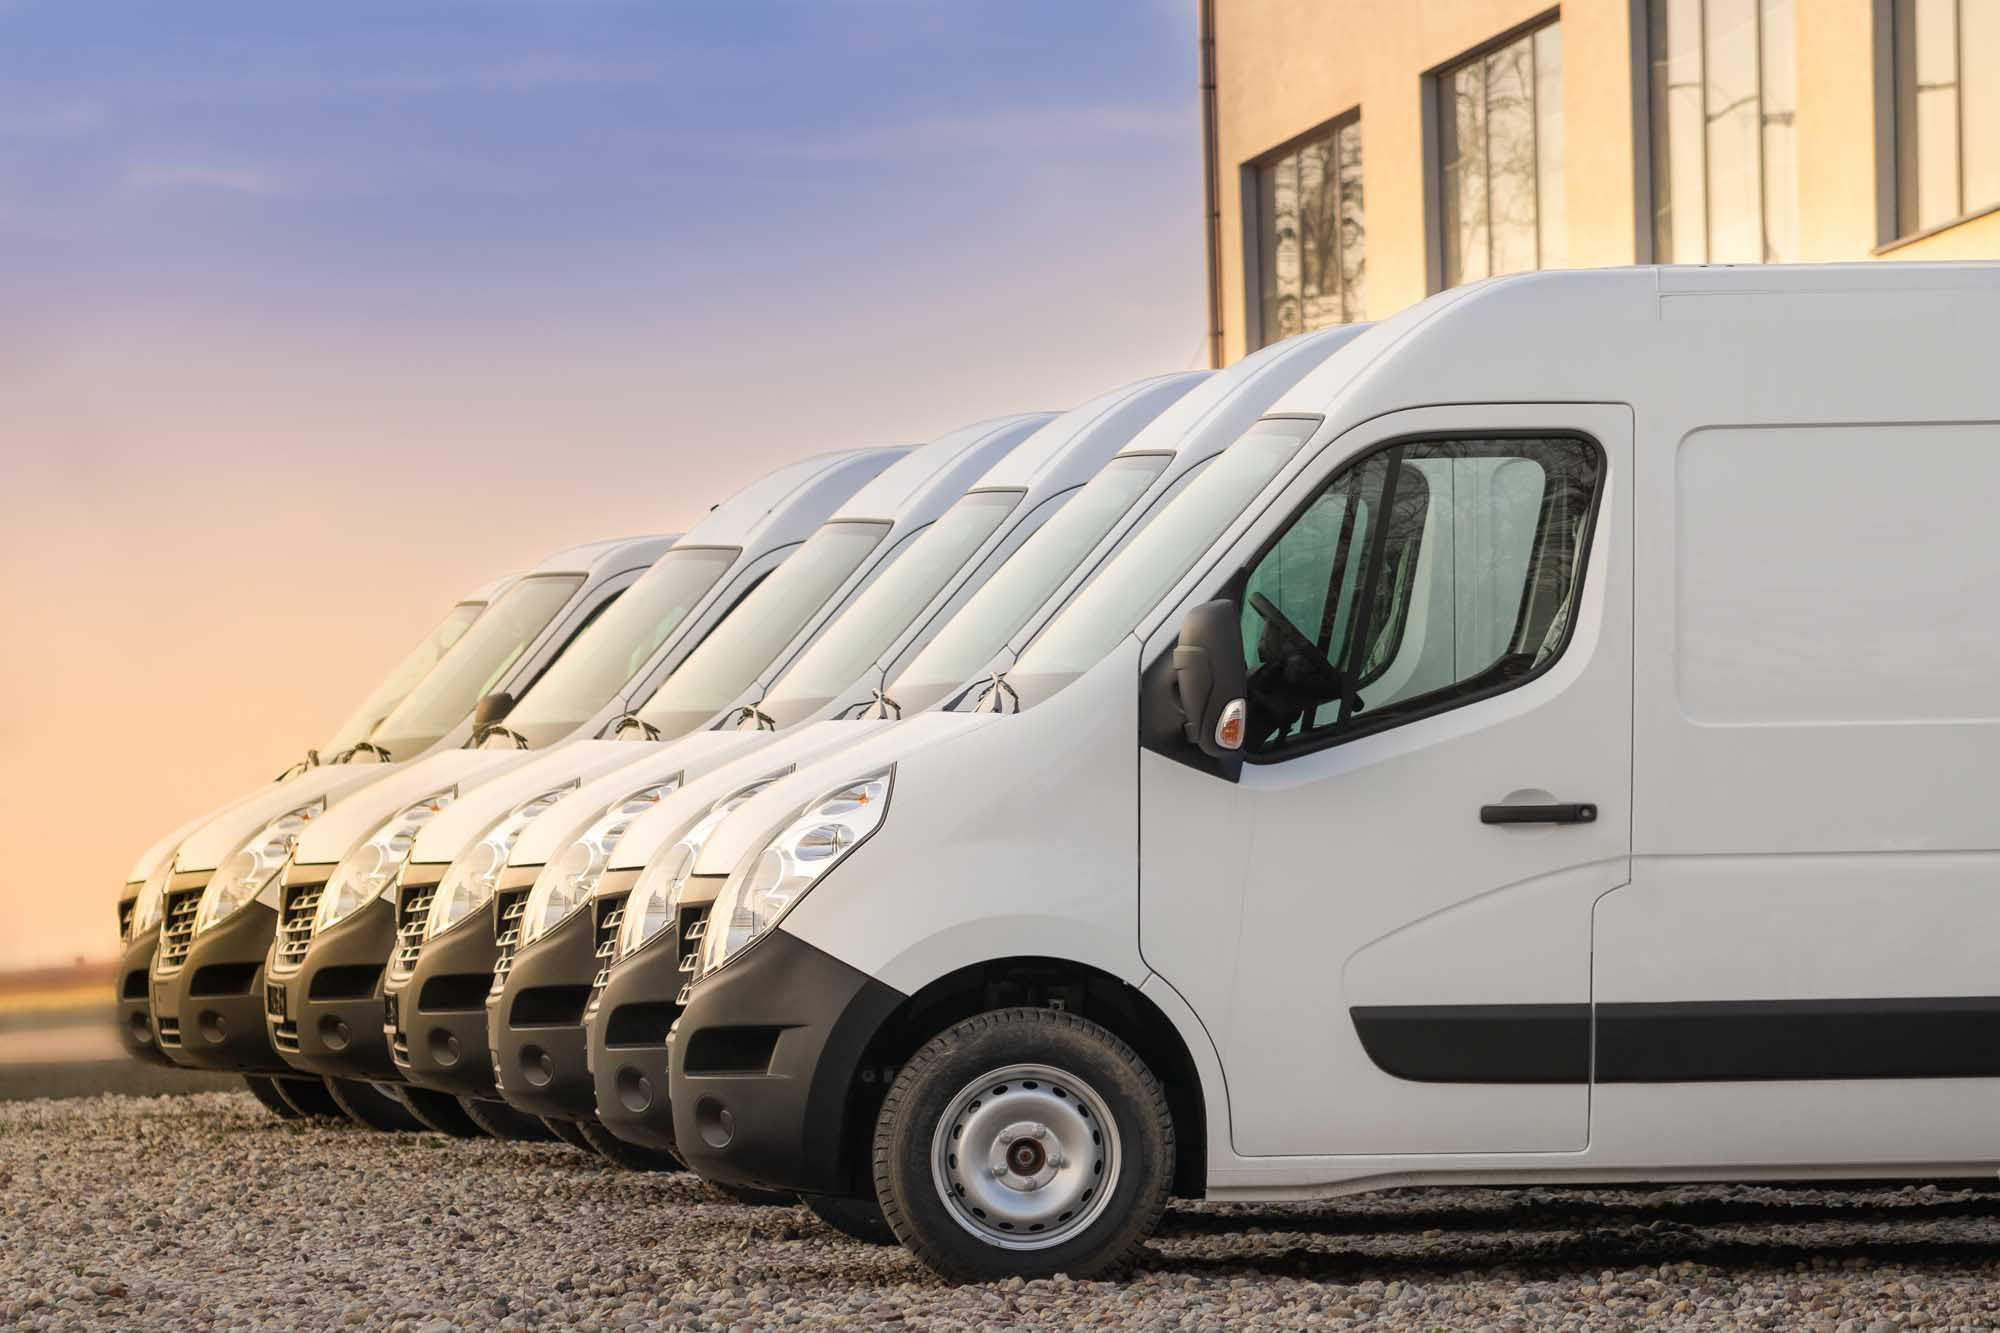 commercial delivery vans parked in row. Transporting service company.